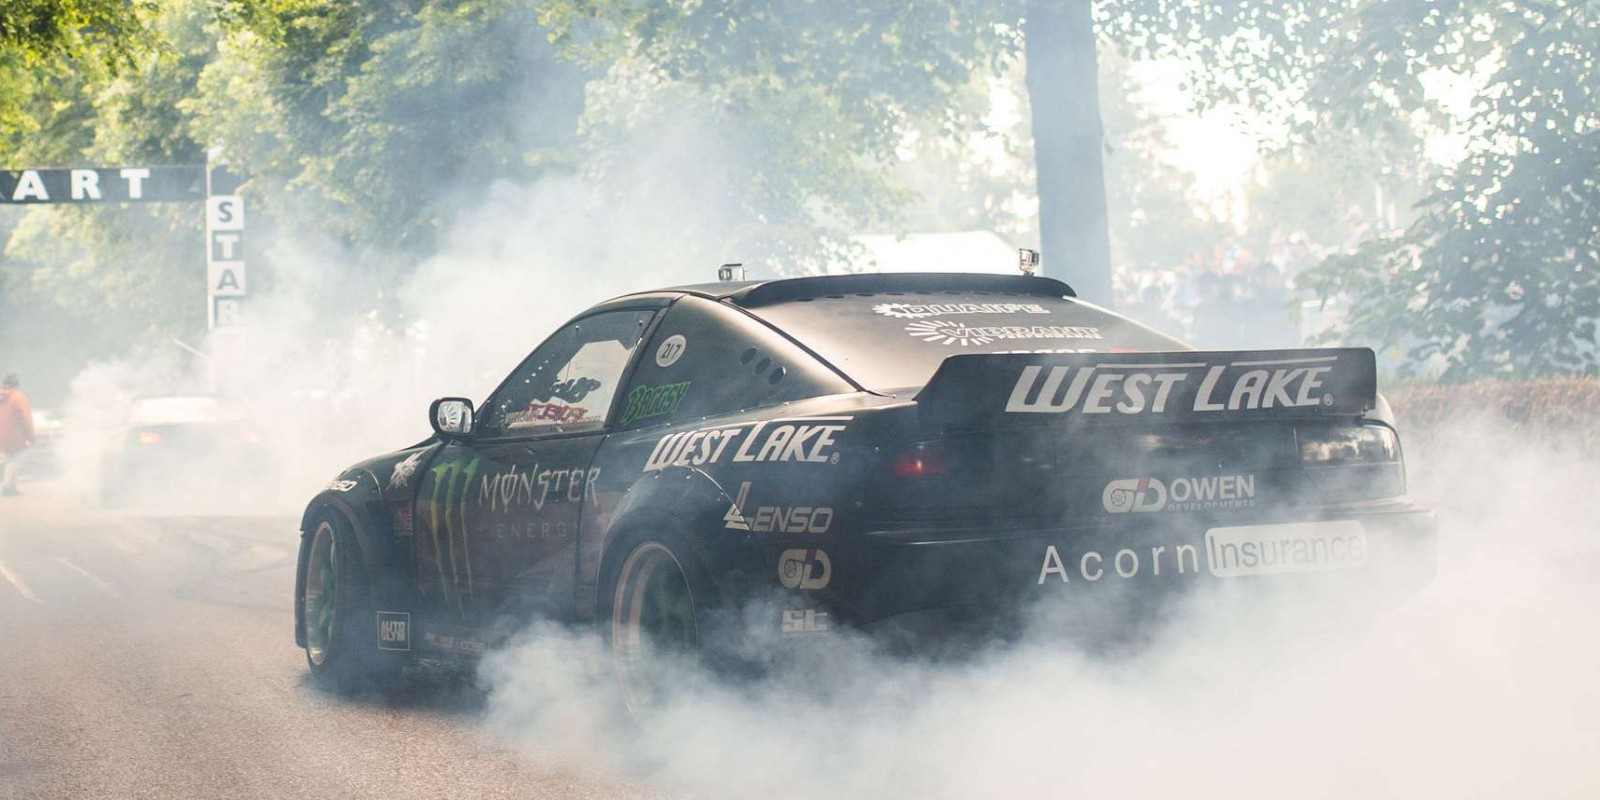 Images from Saturday afternoon at Goodwood FOS 2016